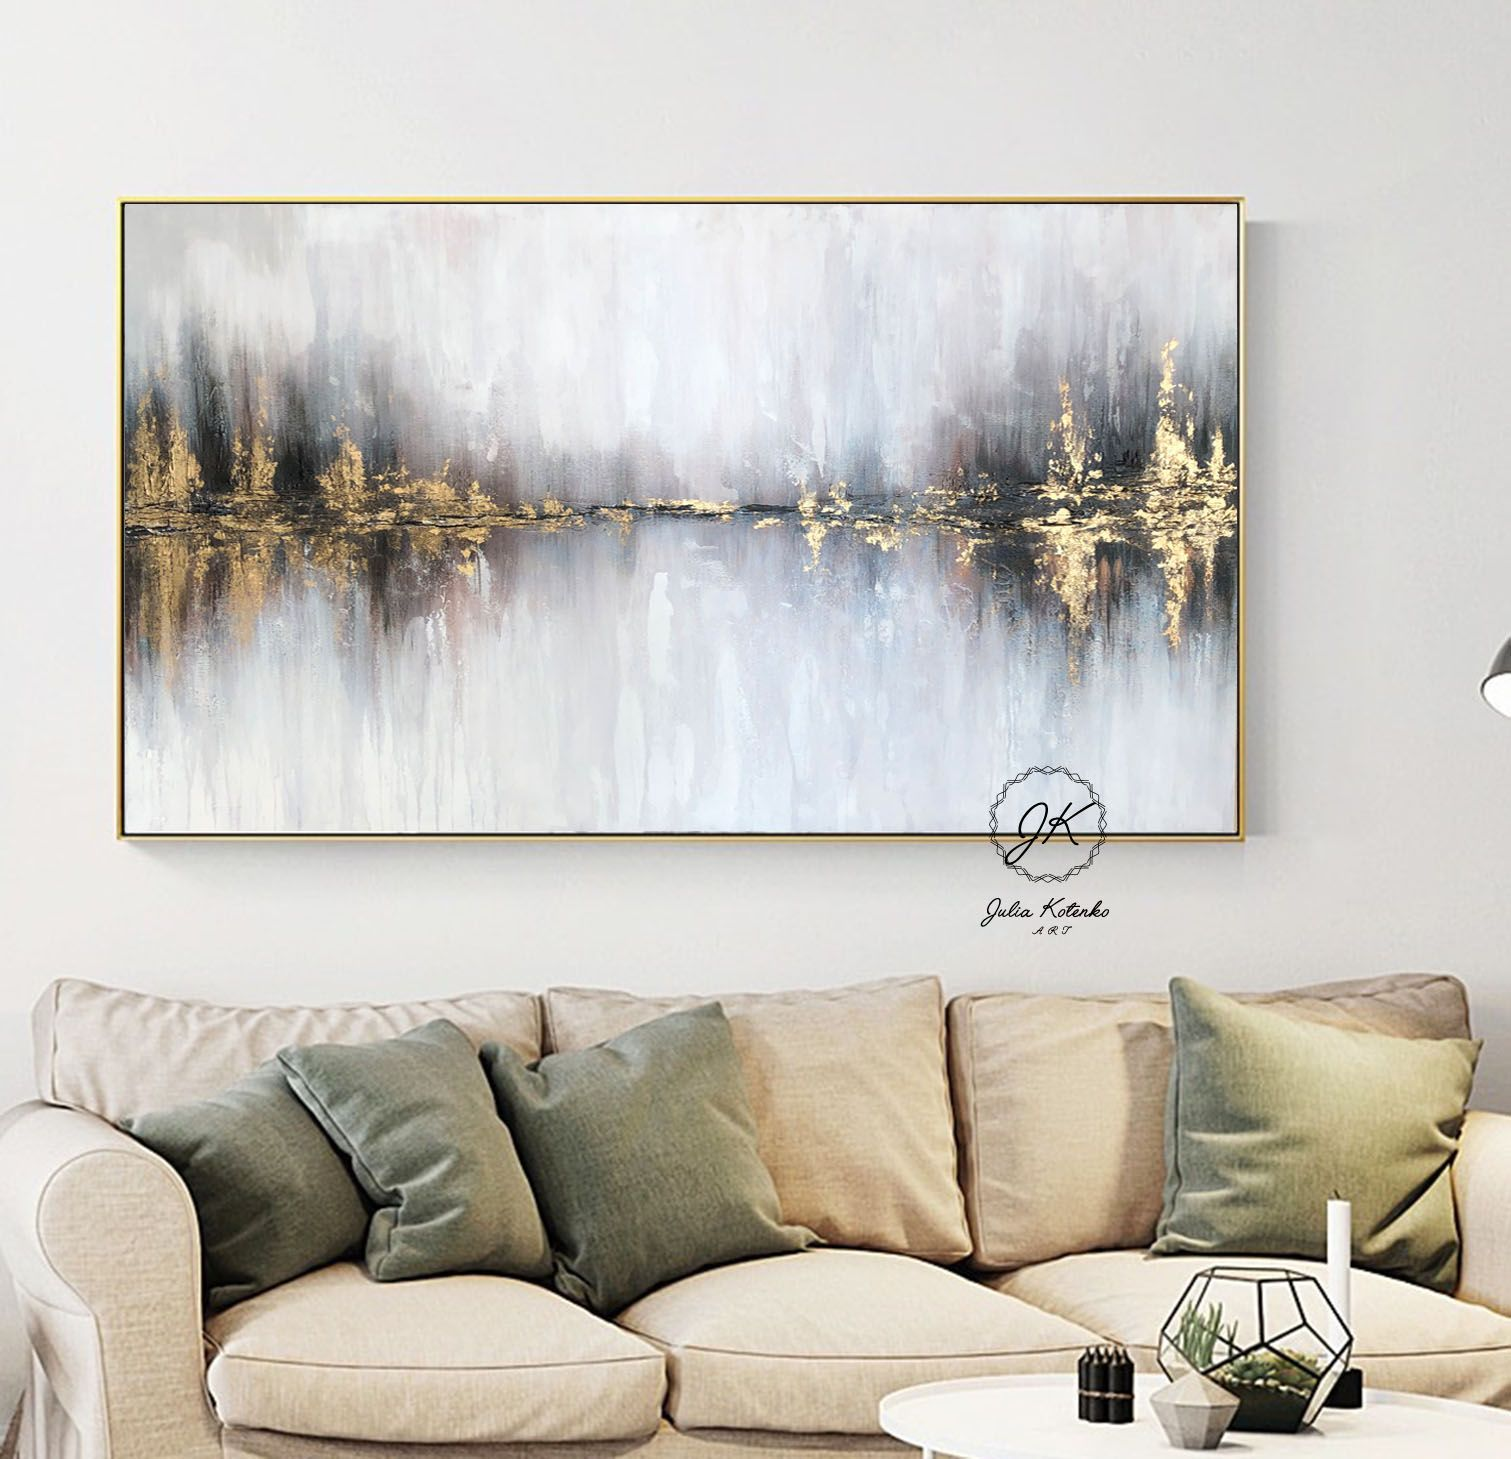 Landscape Abstract Acrylic Painting Gold Leaf Painting Living Room Wall Art Living Room Canvas Beautiful Abstract Painting Abstract Painting Acrylic Wall paintings for living rooms